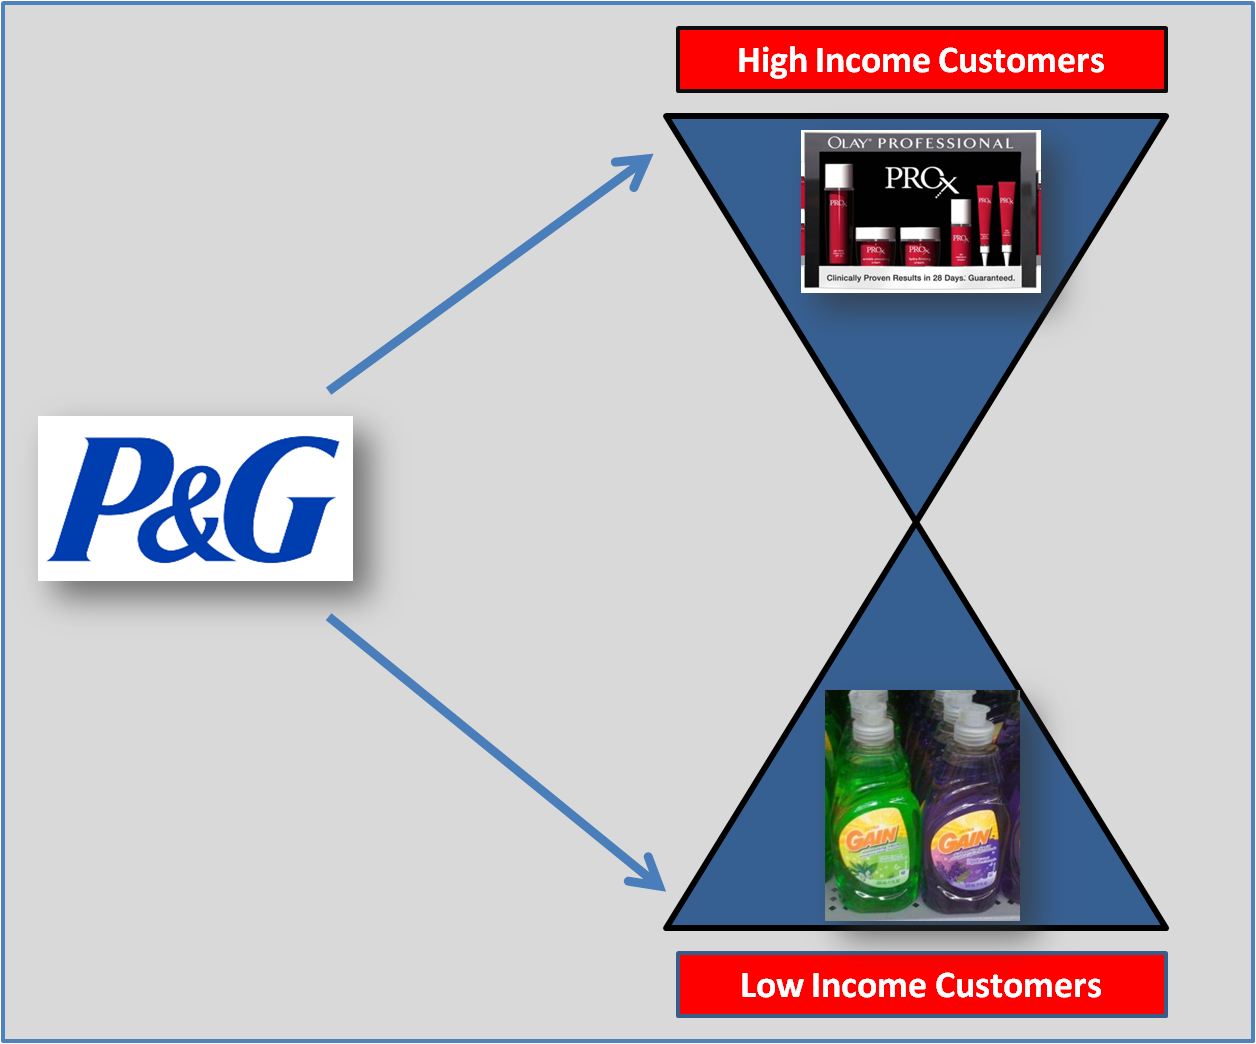 p g strategic plan Transcript of procter & gamble case study- strategic mgmt submitted by: p&g customers knows price reflects best product from intense r&d.